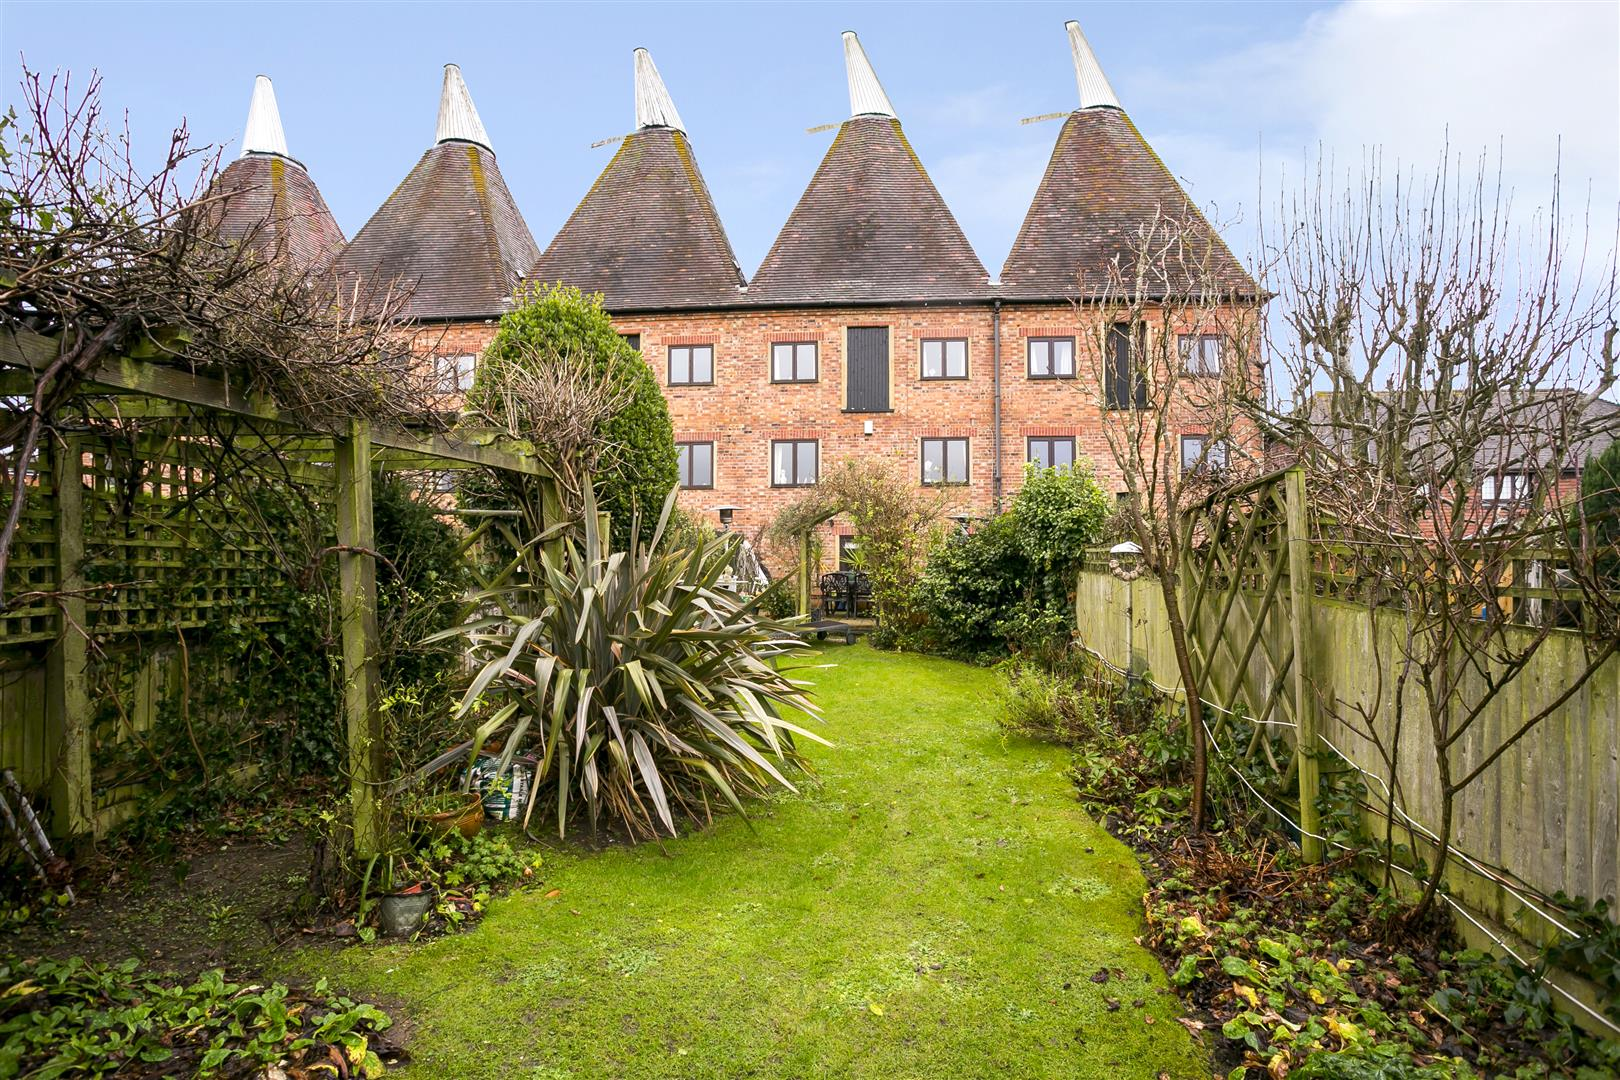 4 Bedrooms Terraced House for sale in Oast Court, Yalding, Maidstone